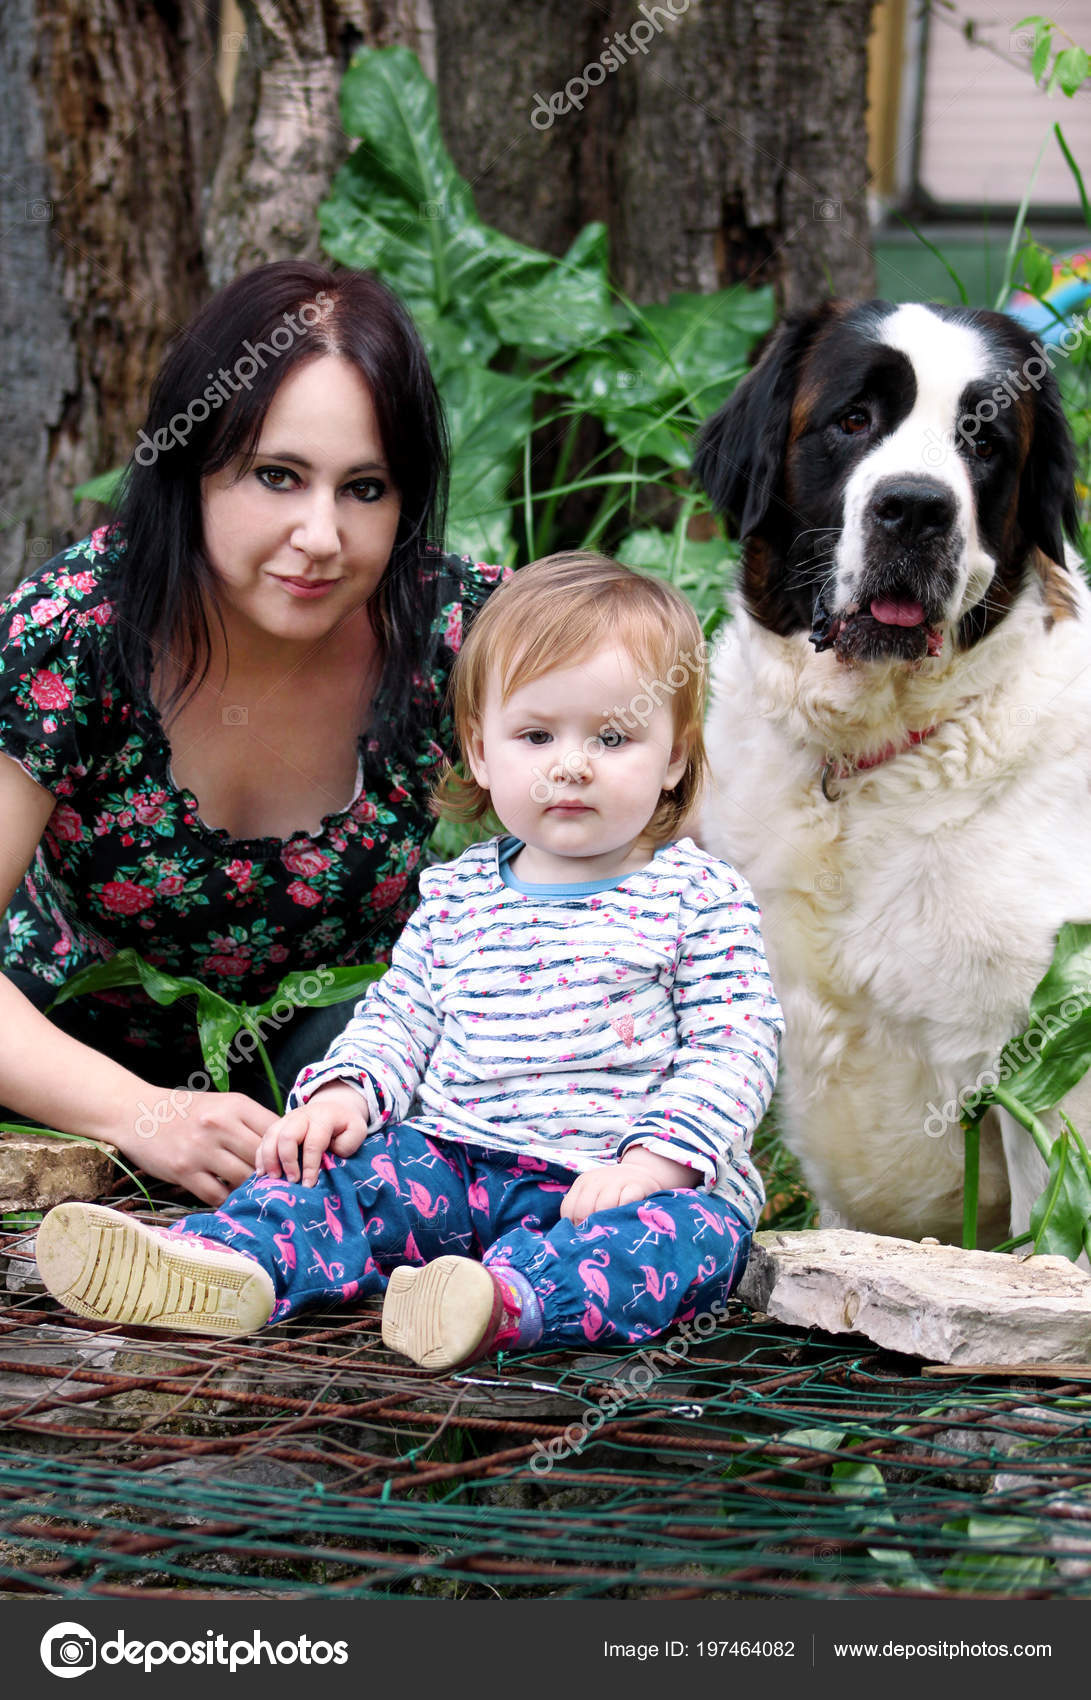 Family And Love Pets Concept Portrait With Mother Baby Girl Is Sitting Playing Dog In Garden Outdoors Child Mom St Bernard